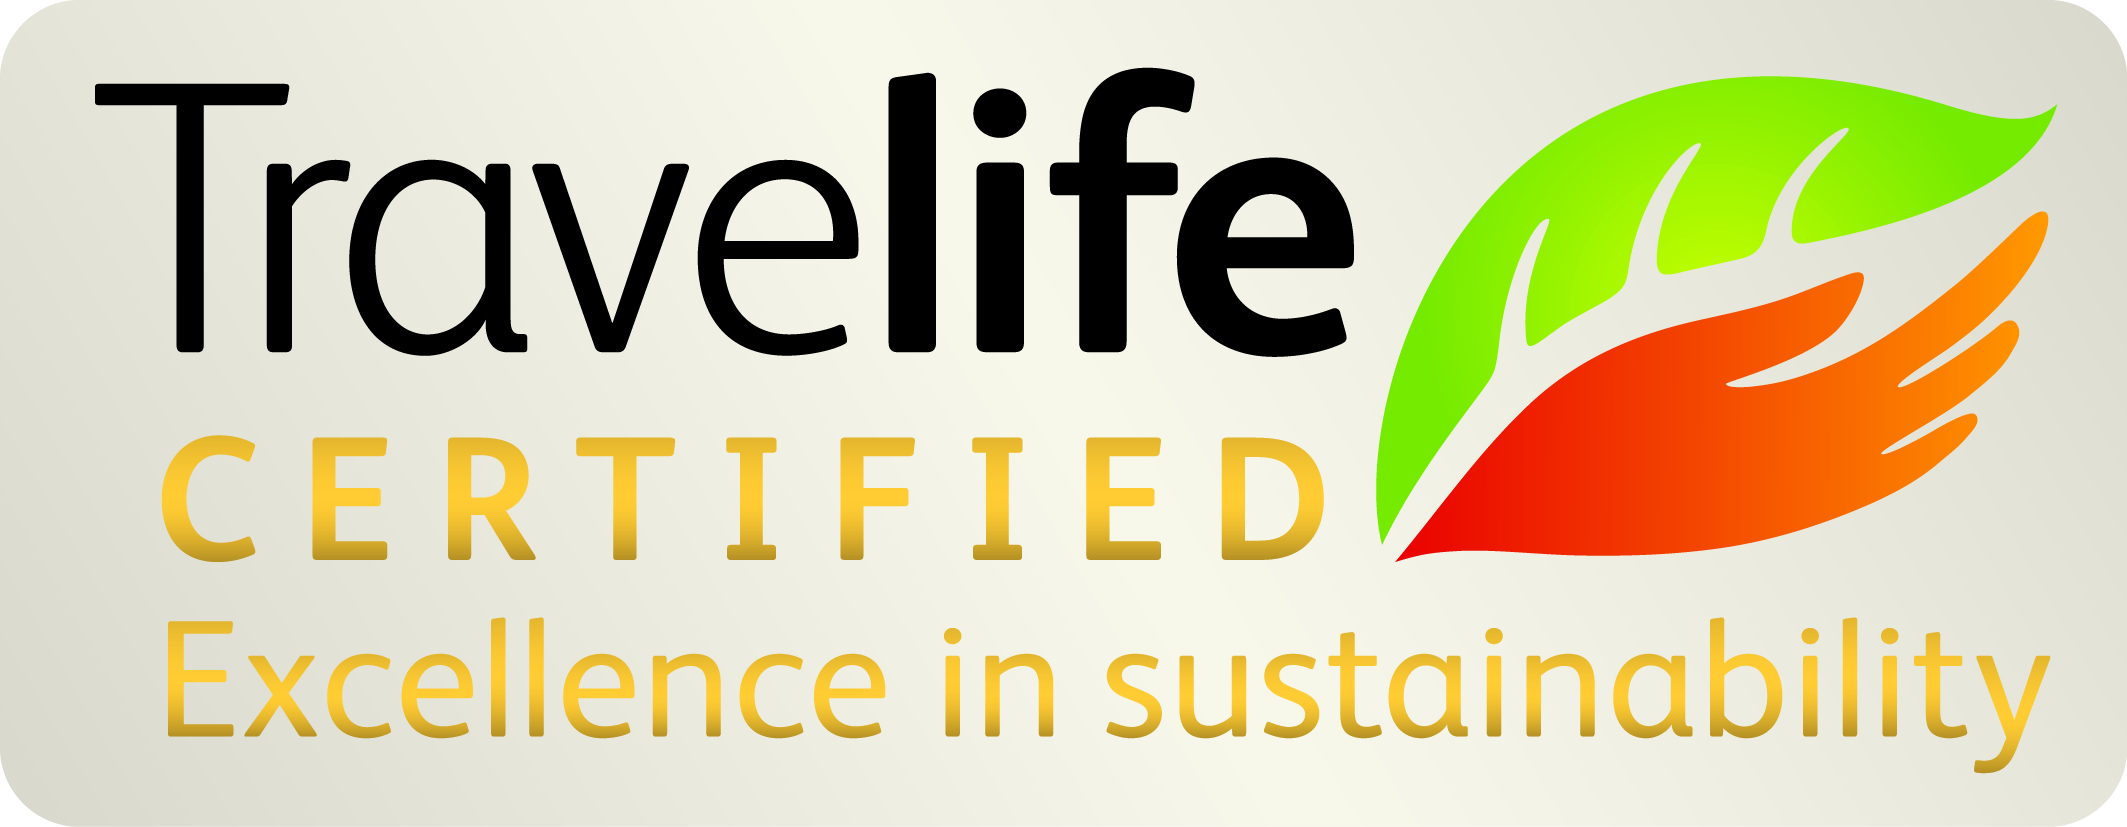 Waterproof Tours Suriname Travelife Certified